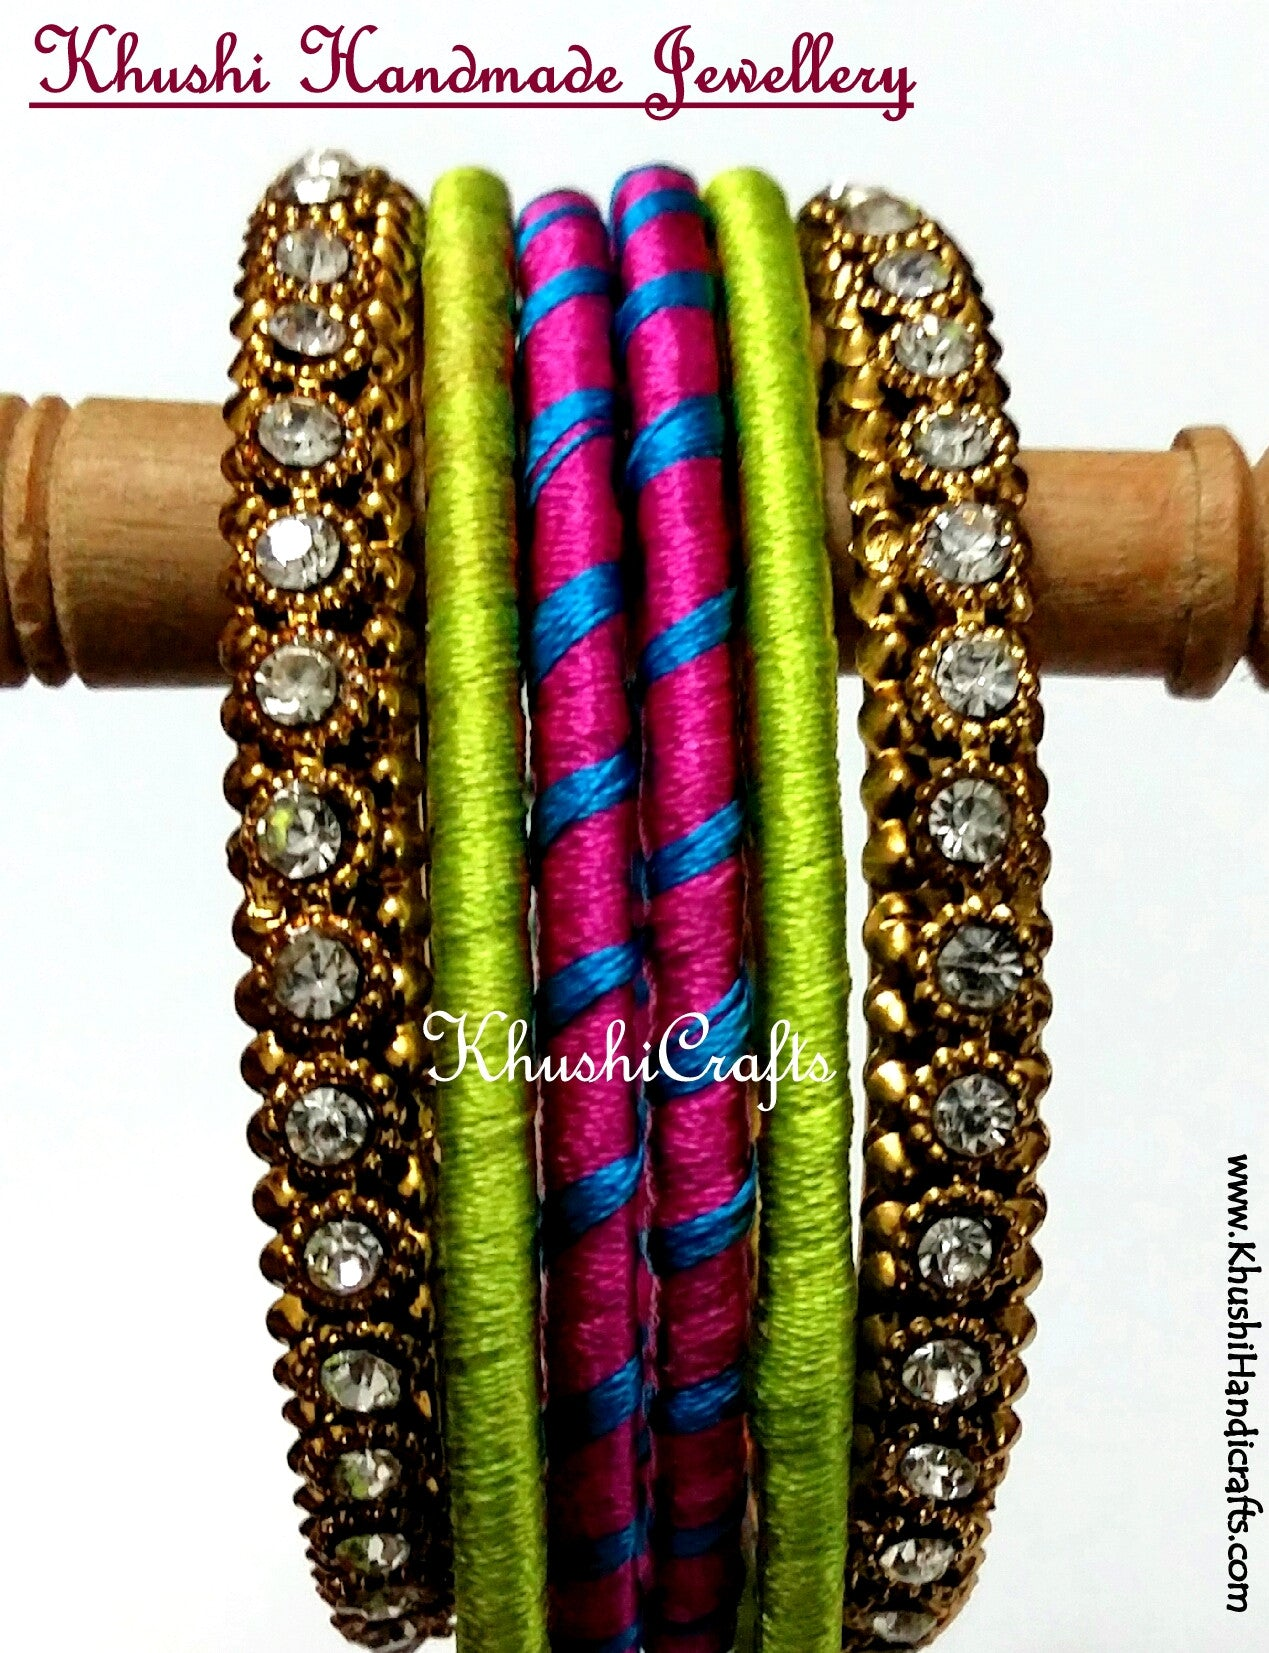 Stunning Silk Bangles in Green and Pink - Khushi Handmade Jewellery